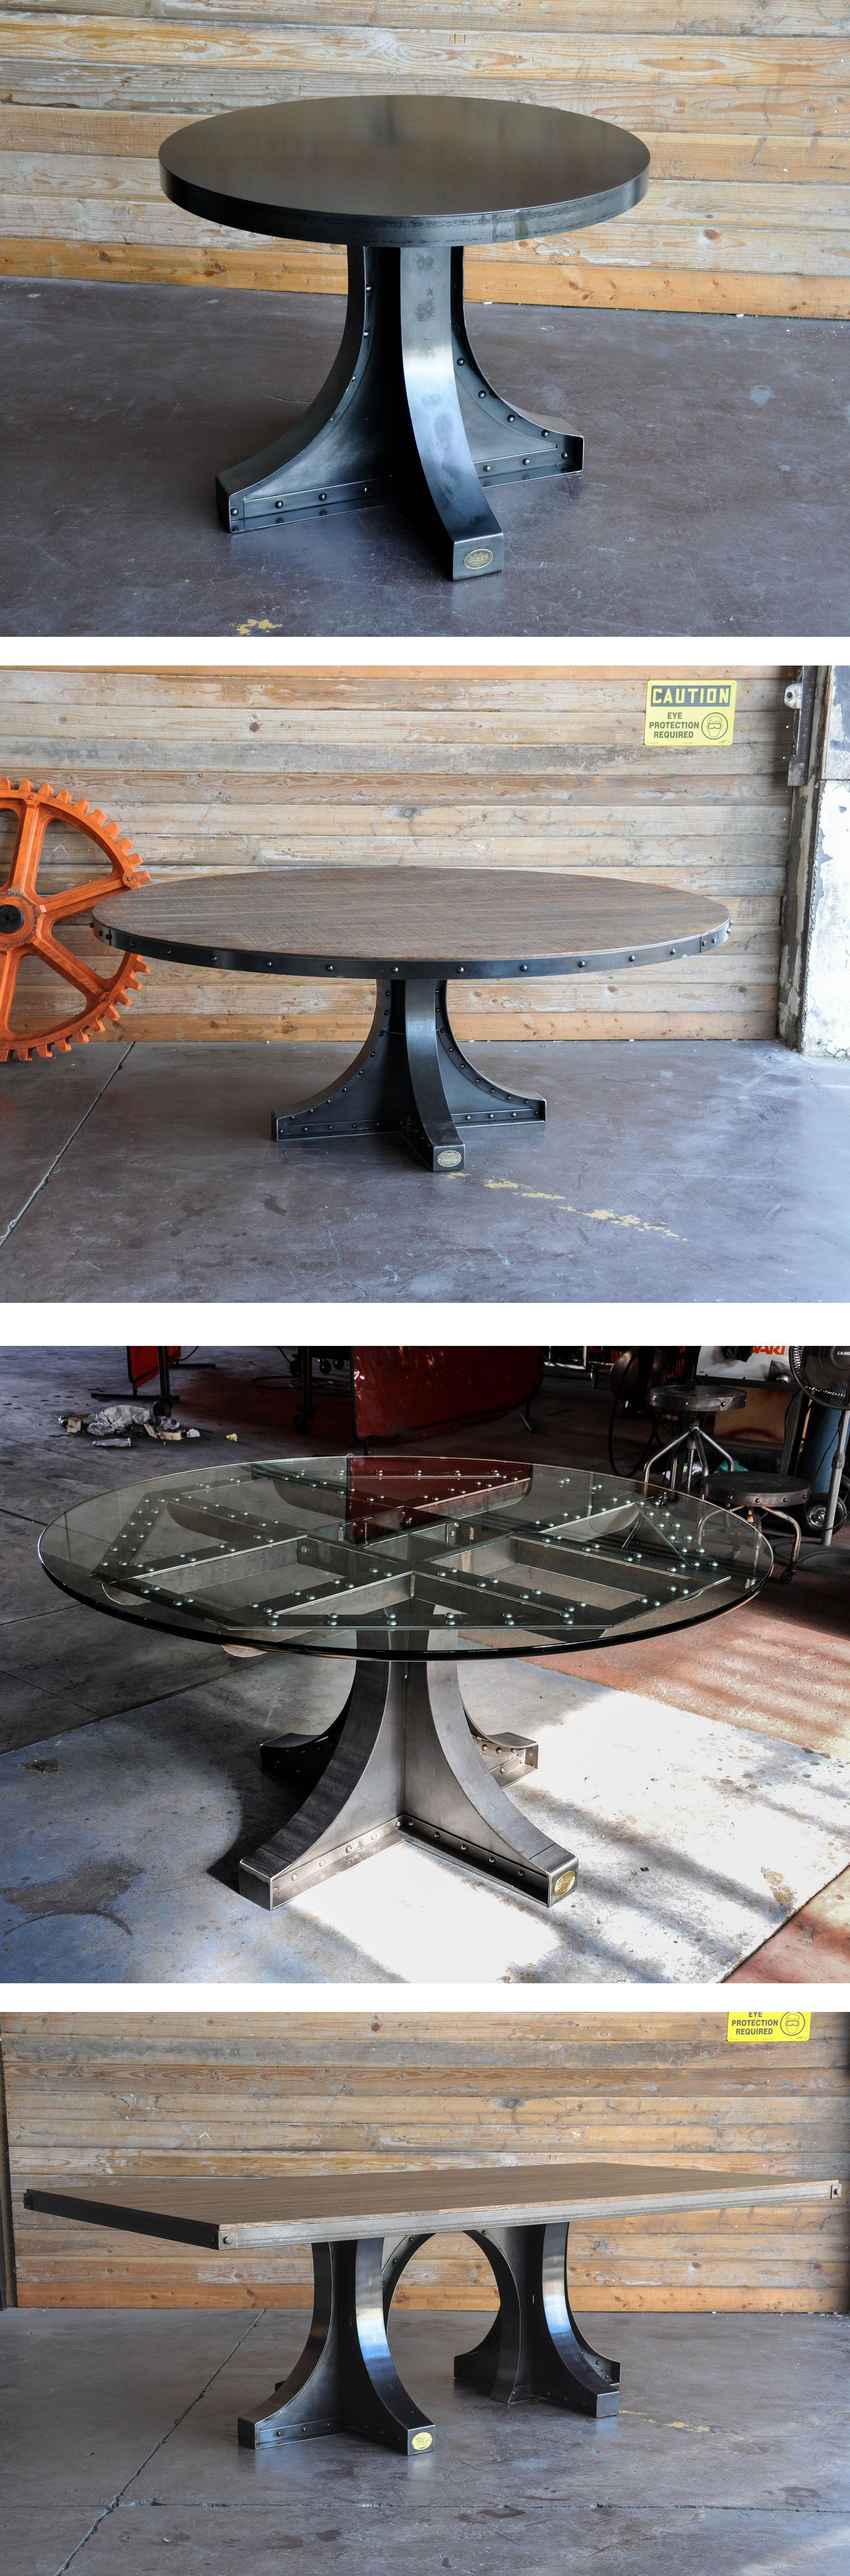 Liberty Tables by Vintage Industrial Furniture in Phoenix, AZ ...